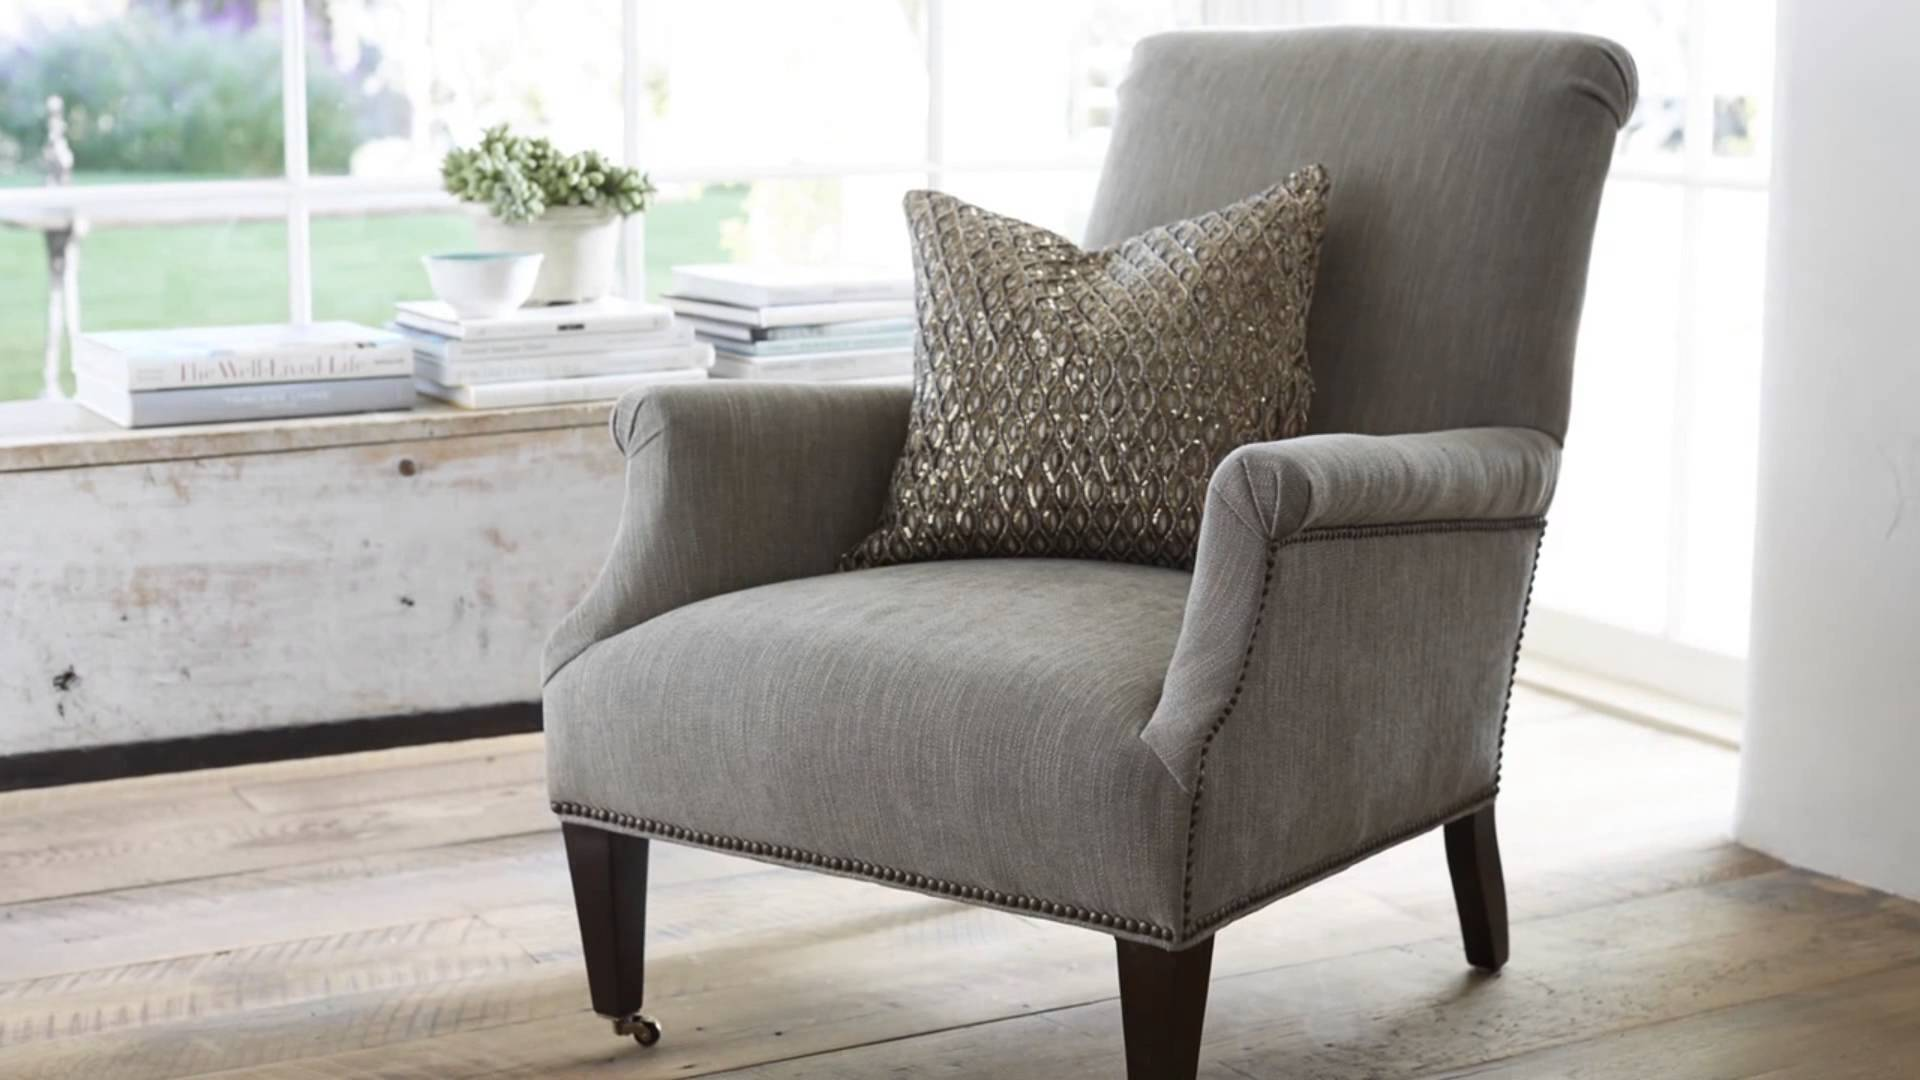 Wonderful Pottery Barn Manhattan Sofa